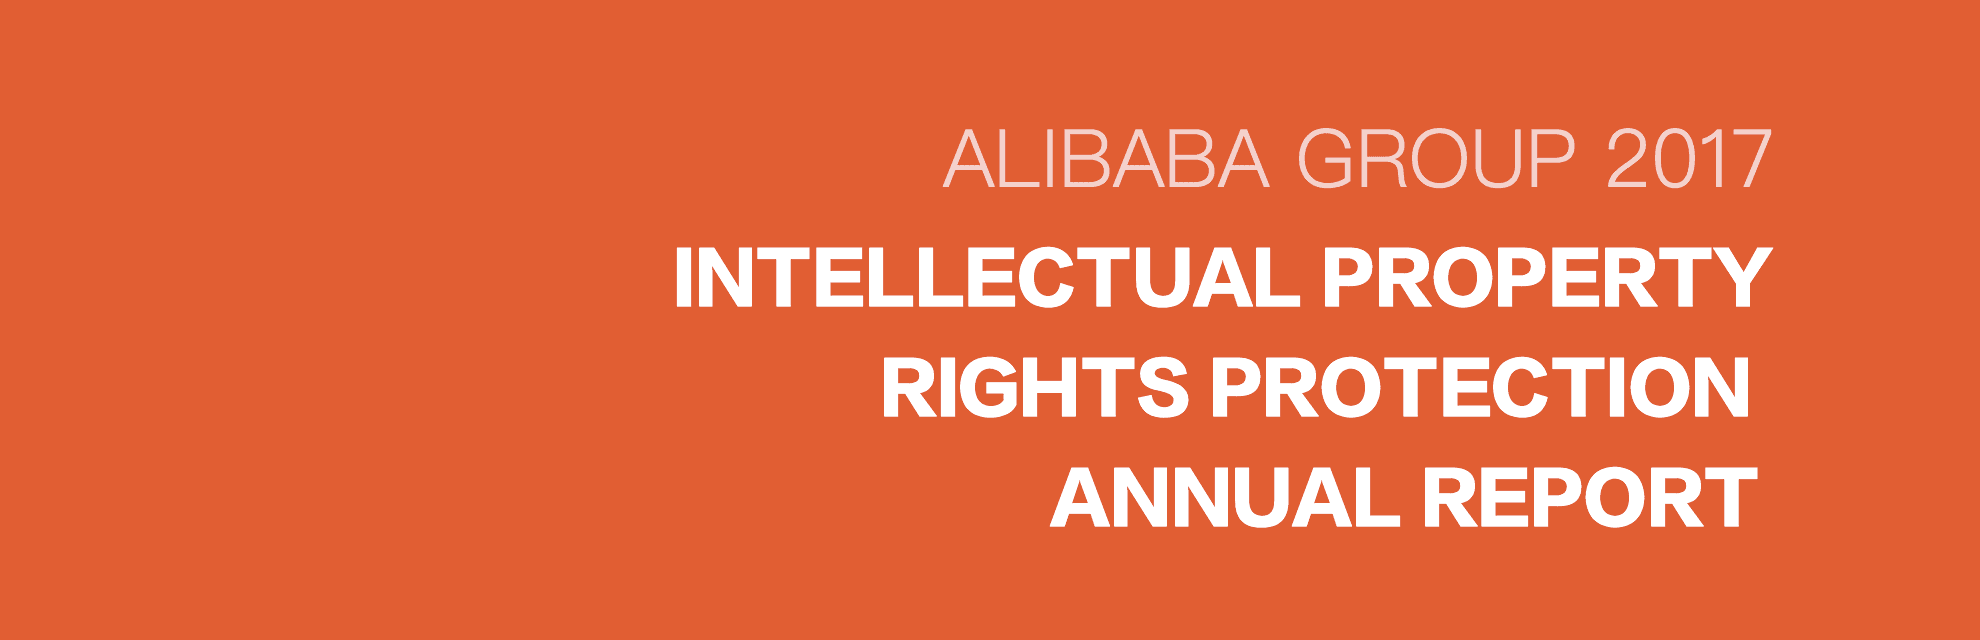 Alibaba Group 2017  Intellectual Property Rights Protection Annual Report